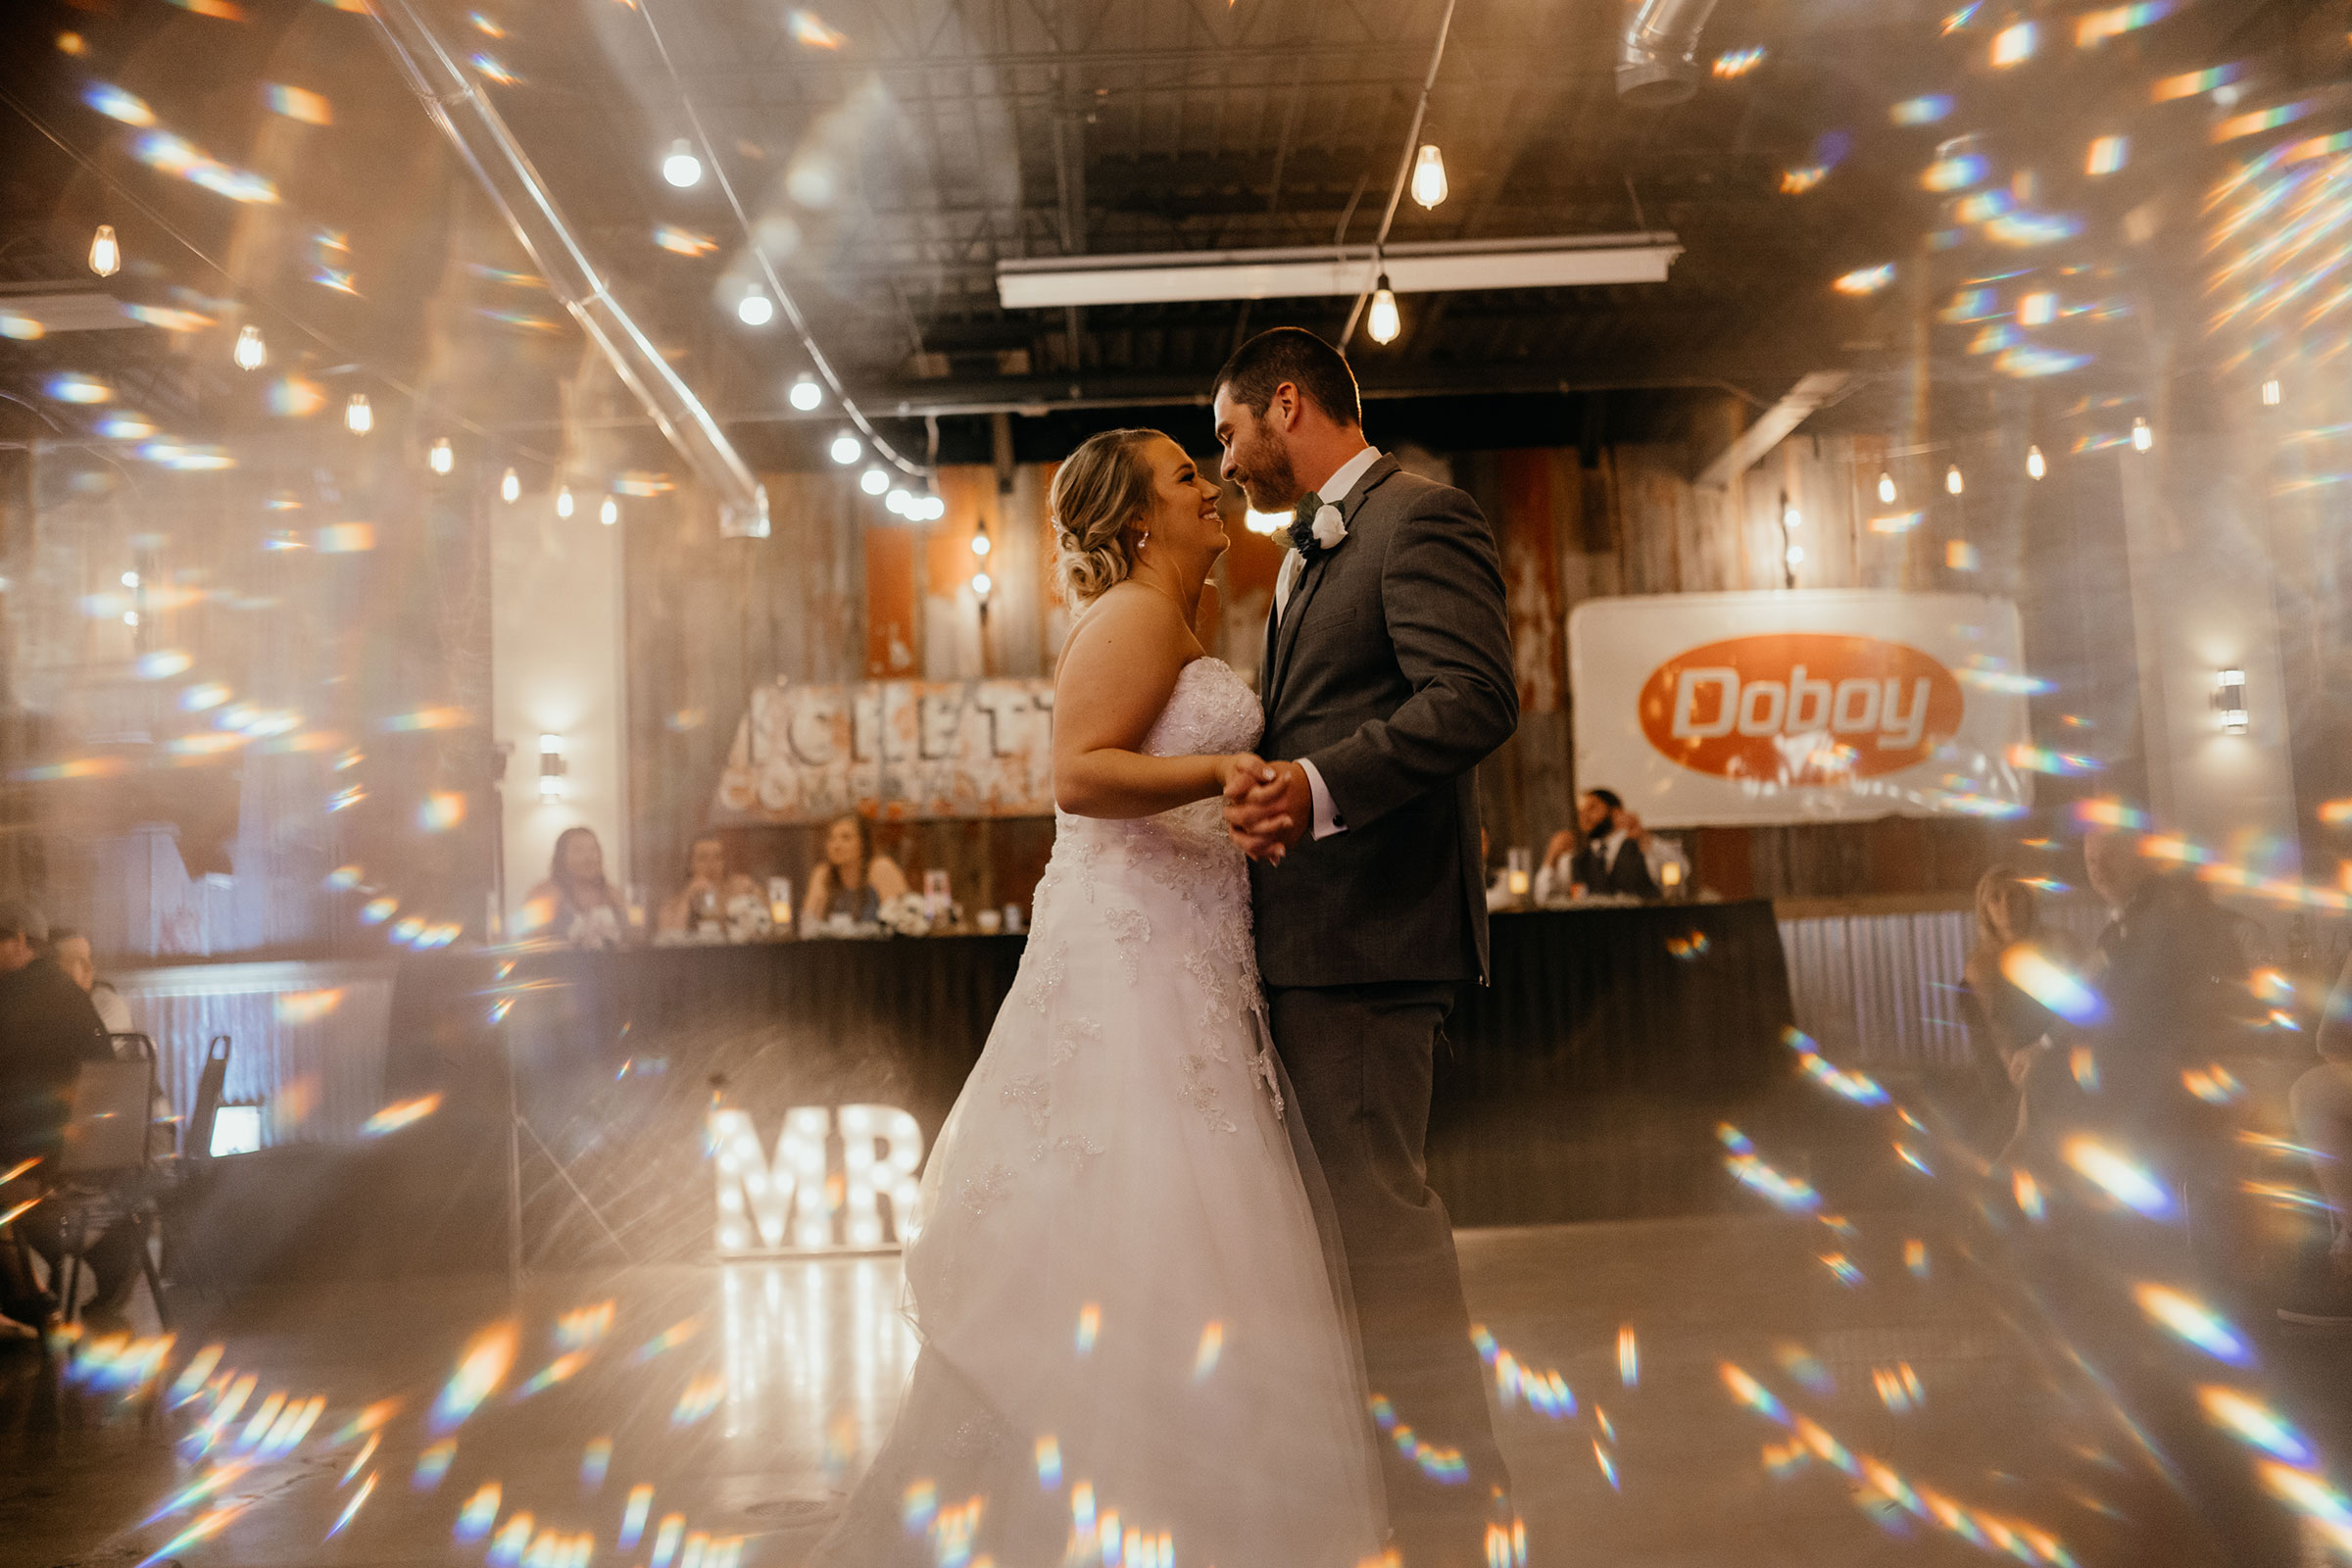 bride-dancing-with-groom-decades-event-center-building-desmoines-iowa-raelyn-ramey-photography..jpg